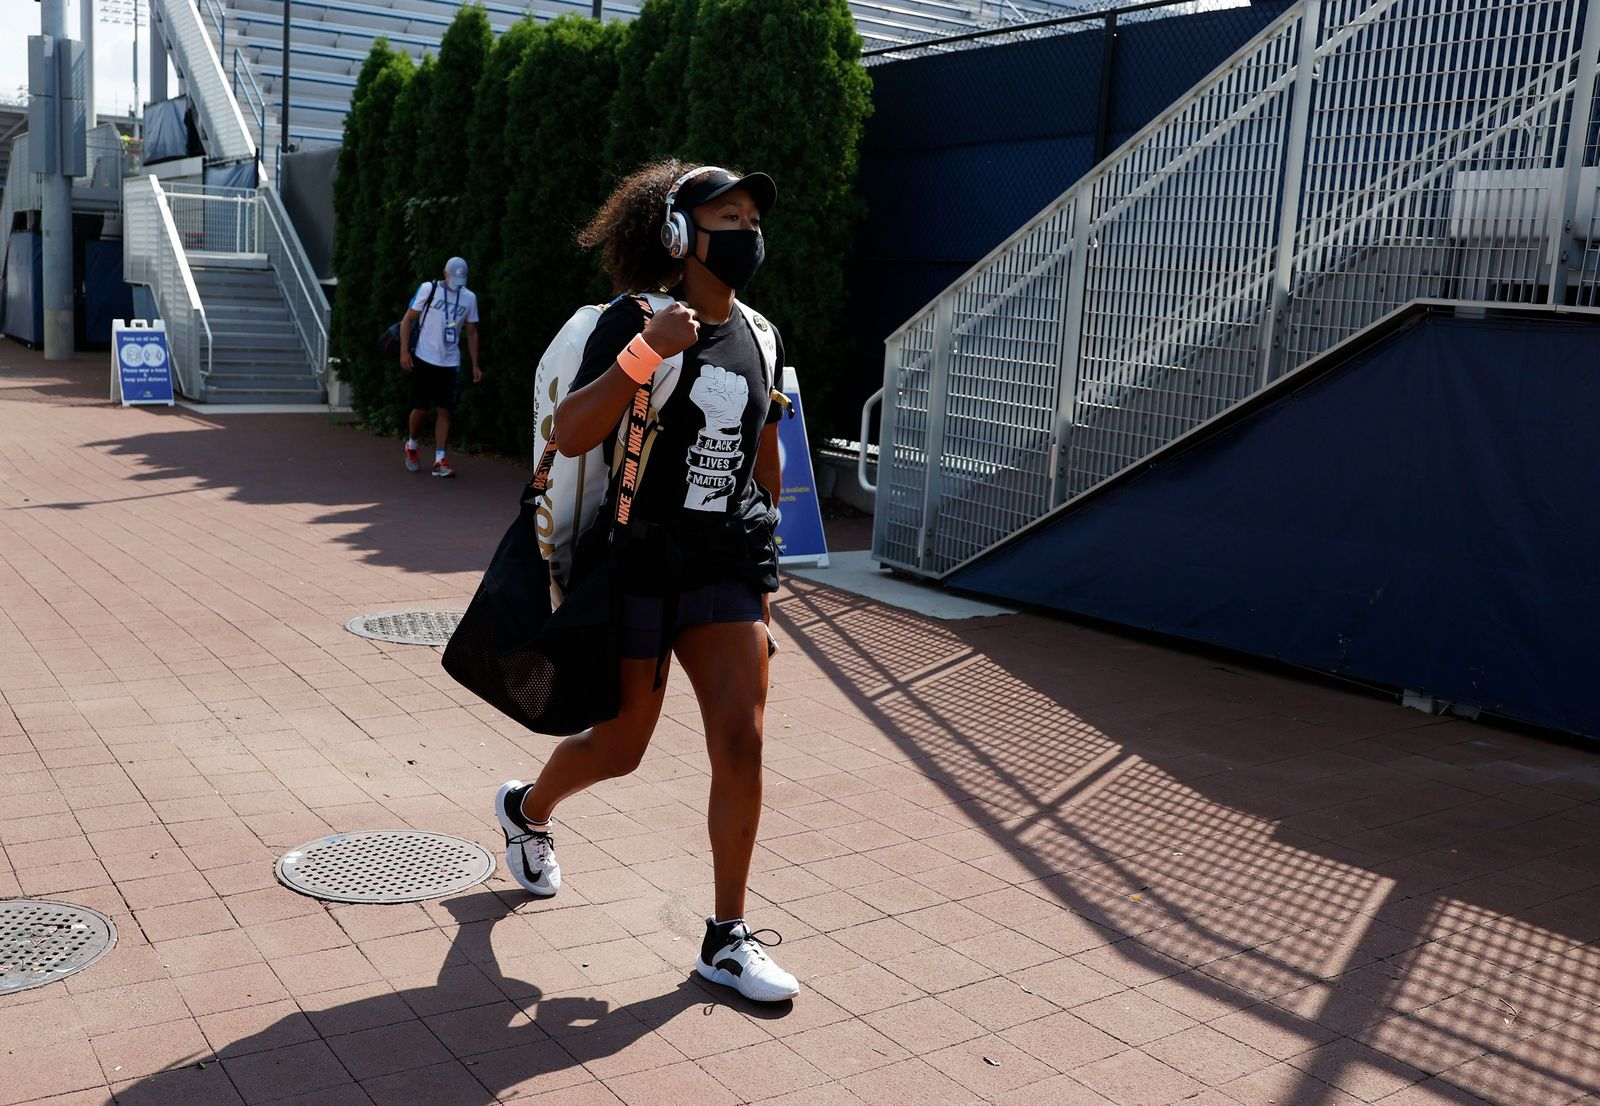 Western and Southern Open in USA, New York - 27 Aug 2020